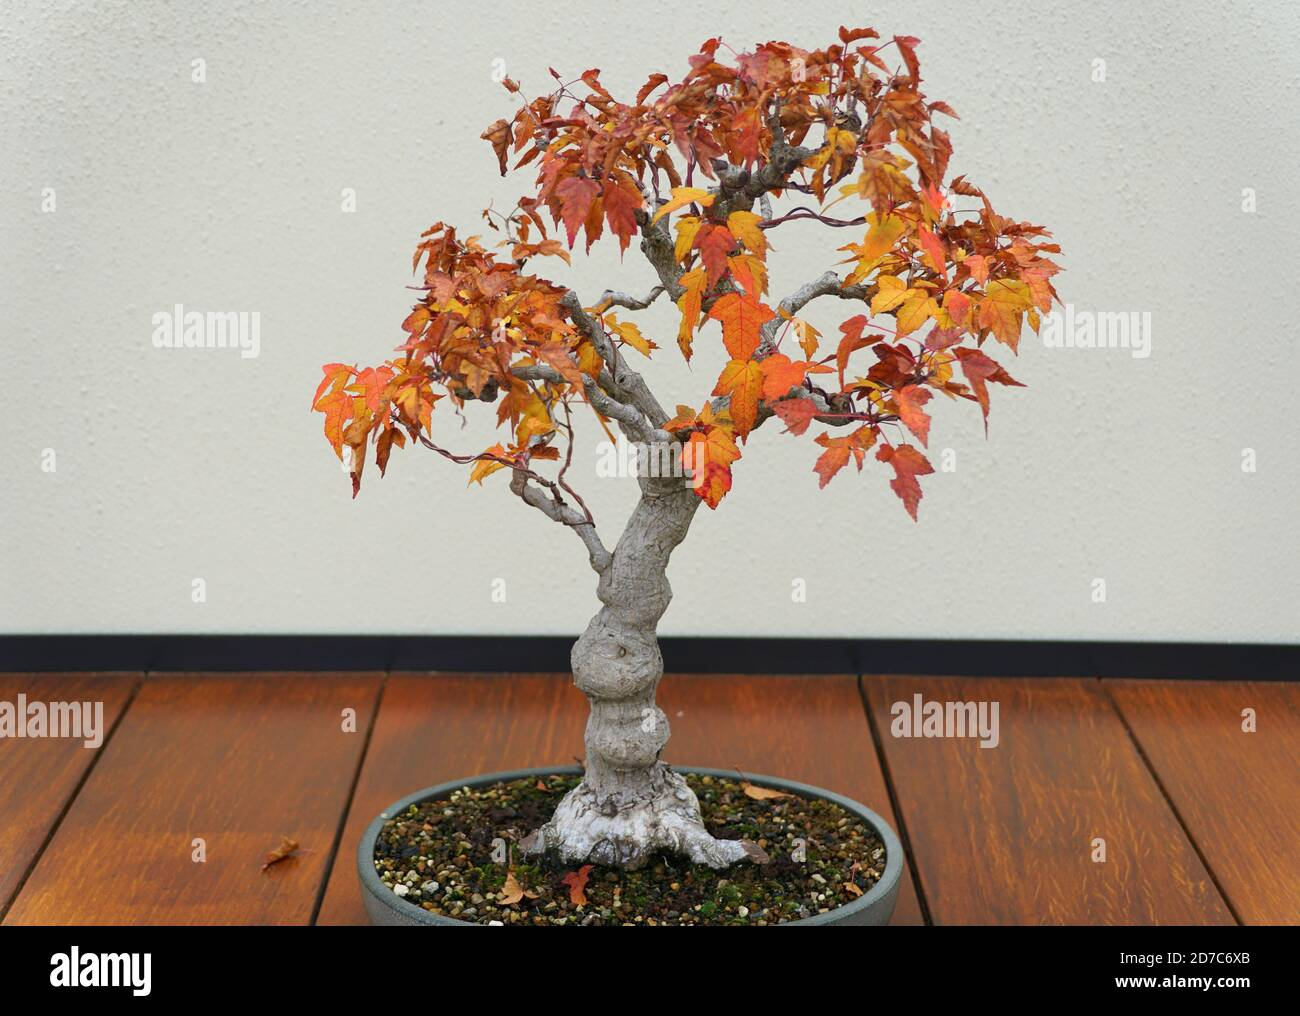 Japanese Maple Bonsai Tree With Red And Yellow Leaves In The Fall Stock Photo Alamy